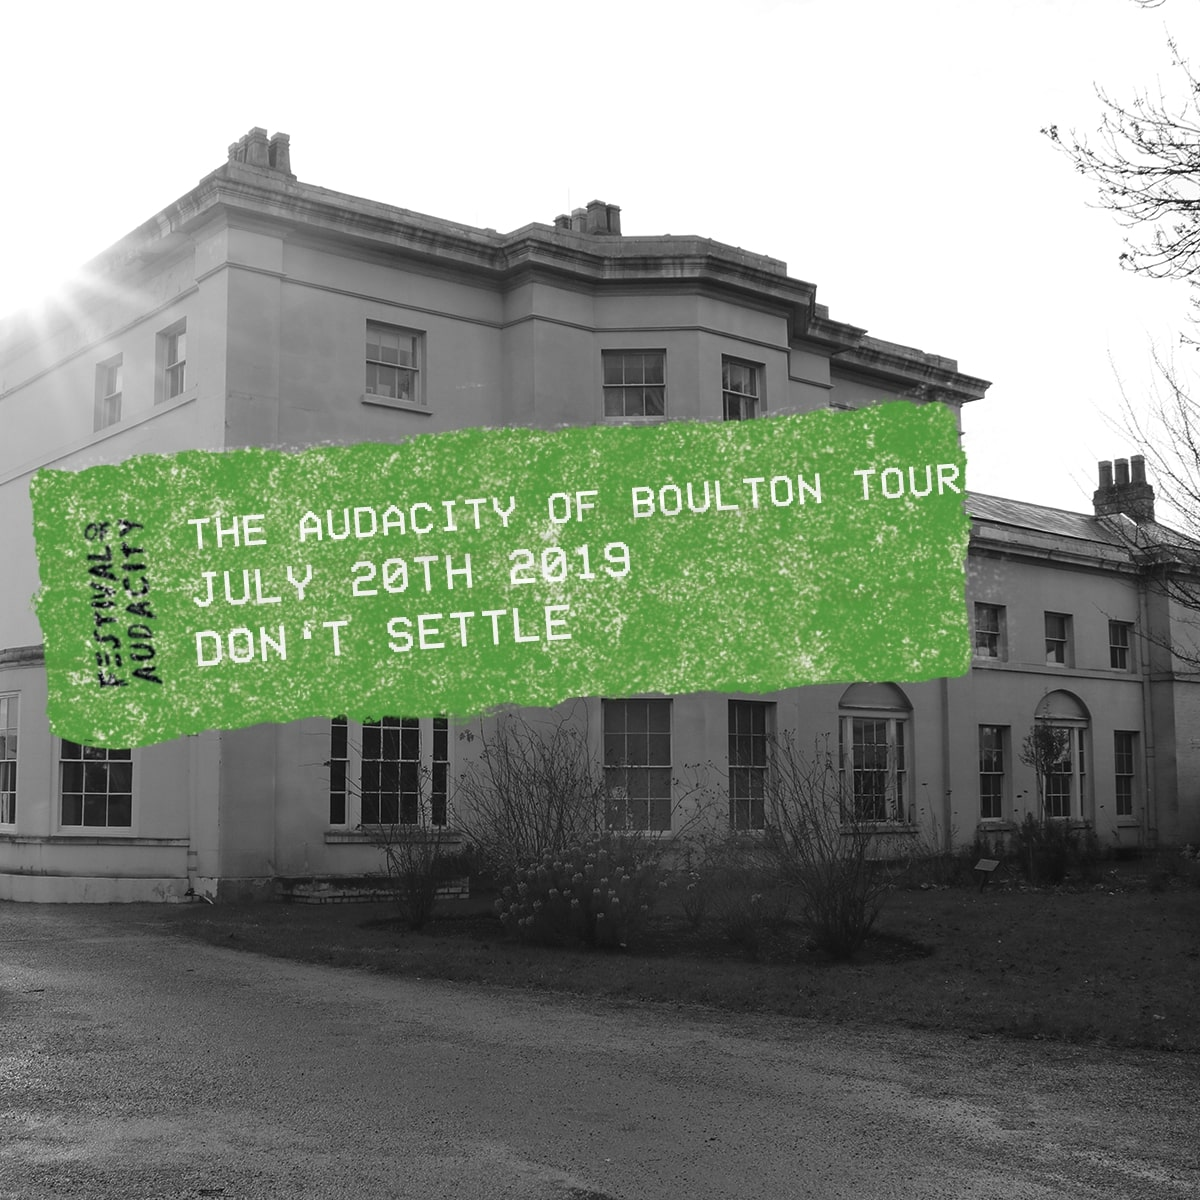 Image of a old building in black and white with a green label detailing Festival of Audacity